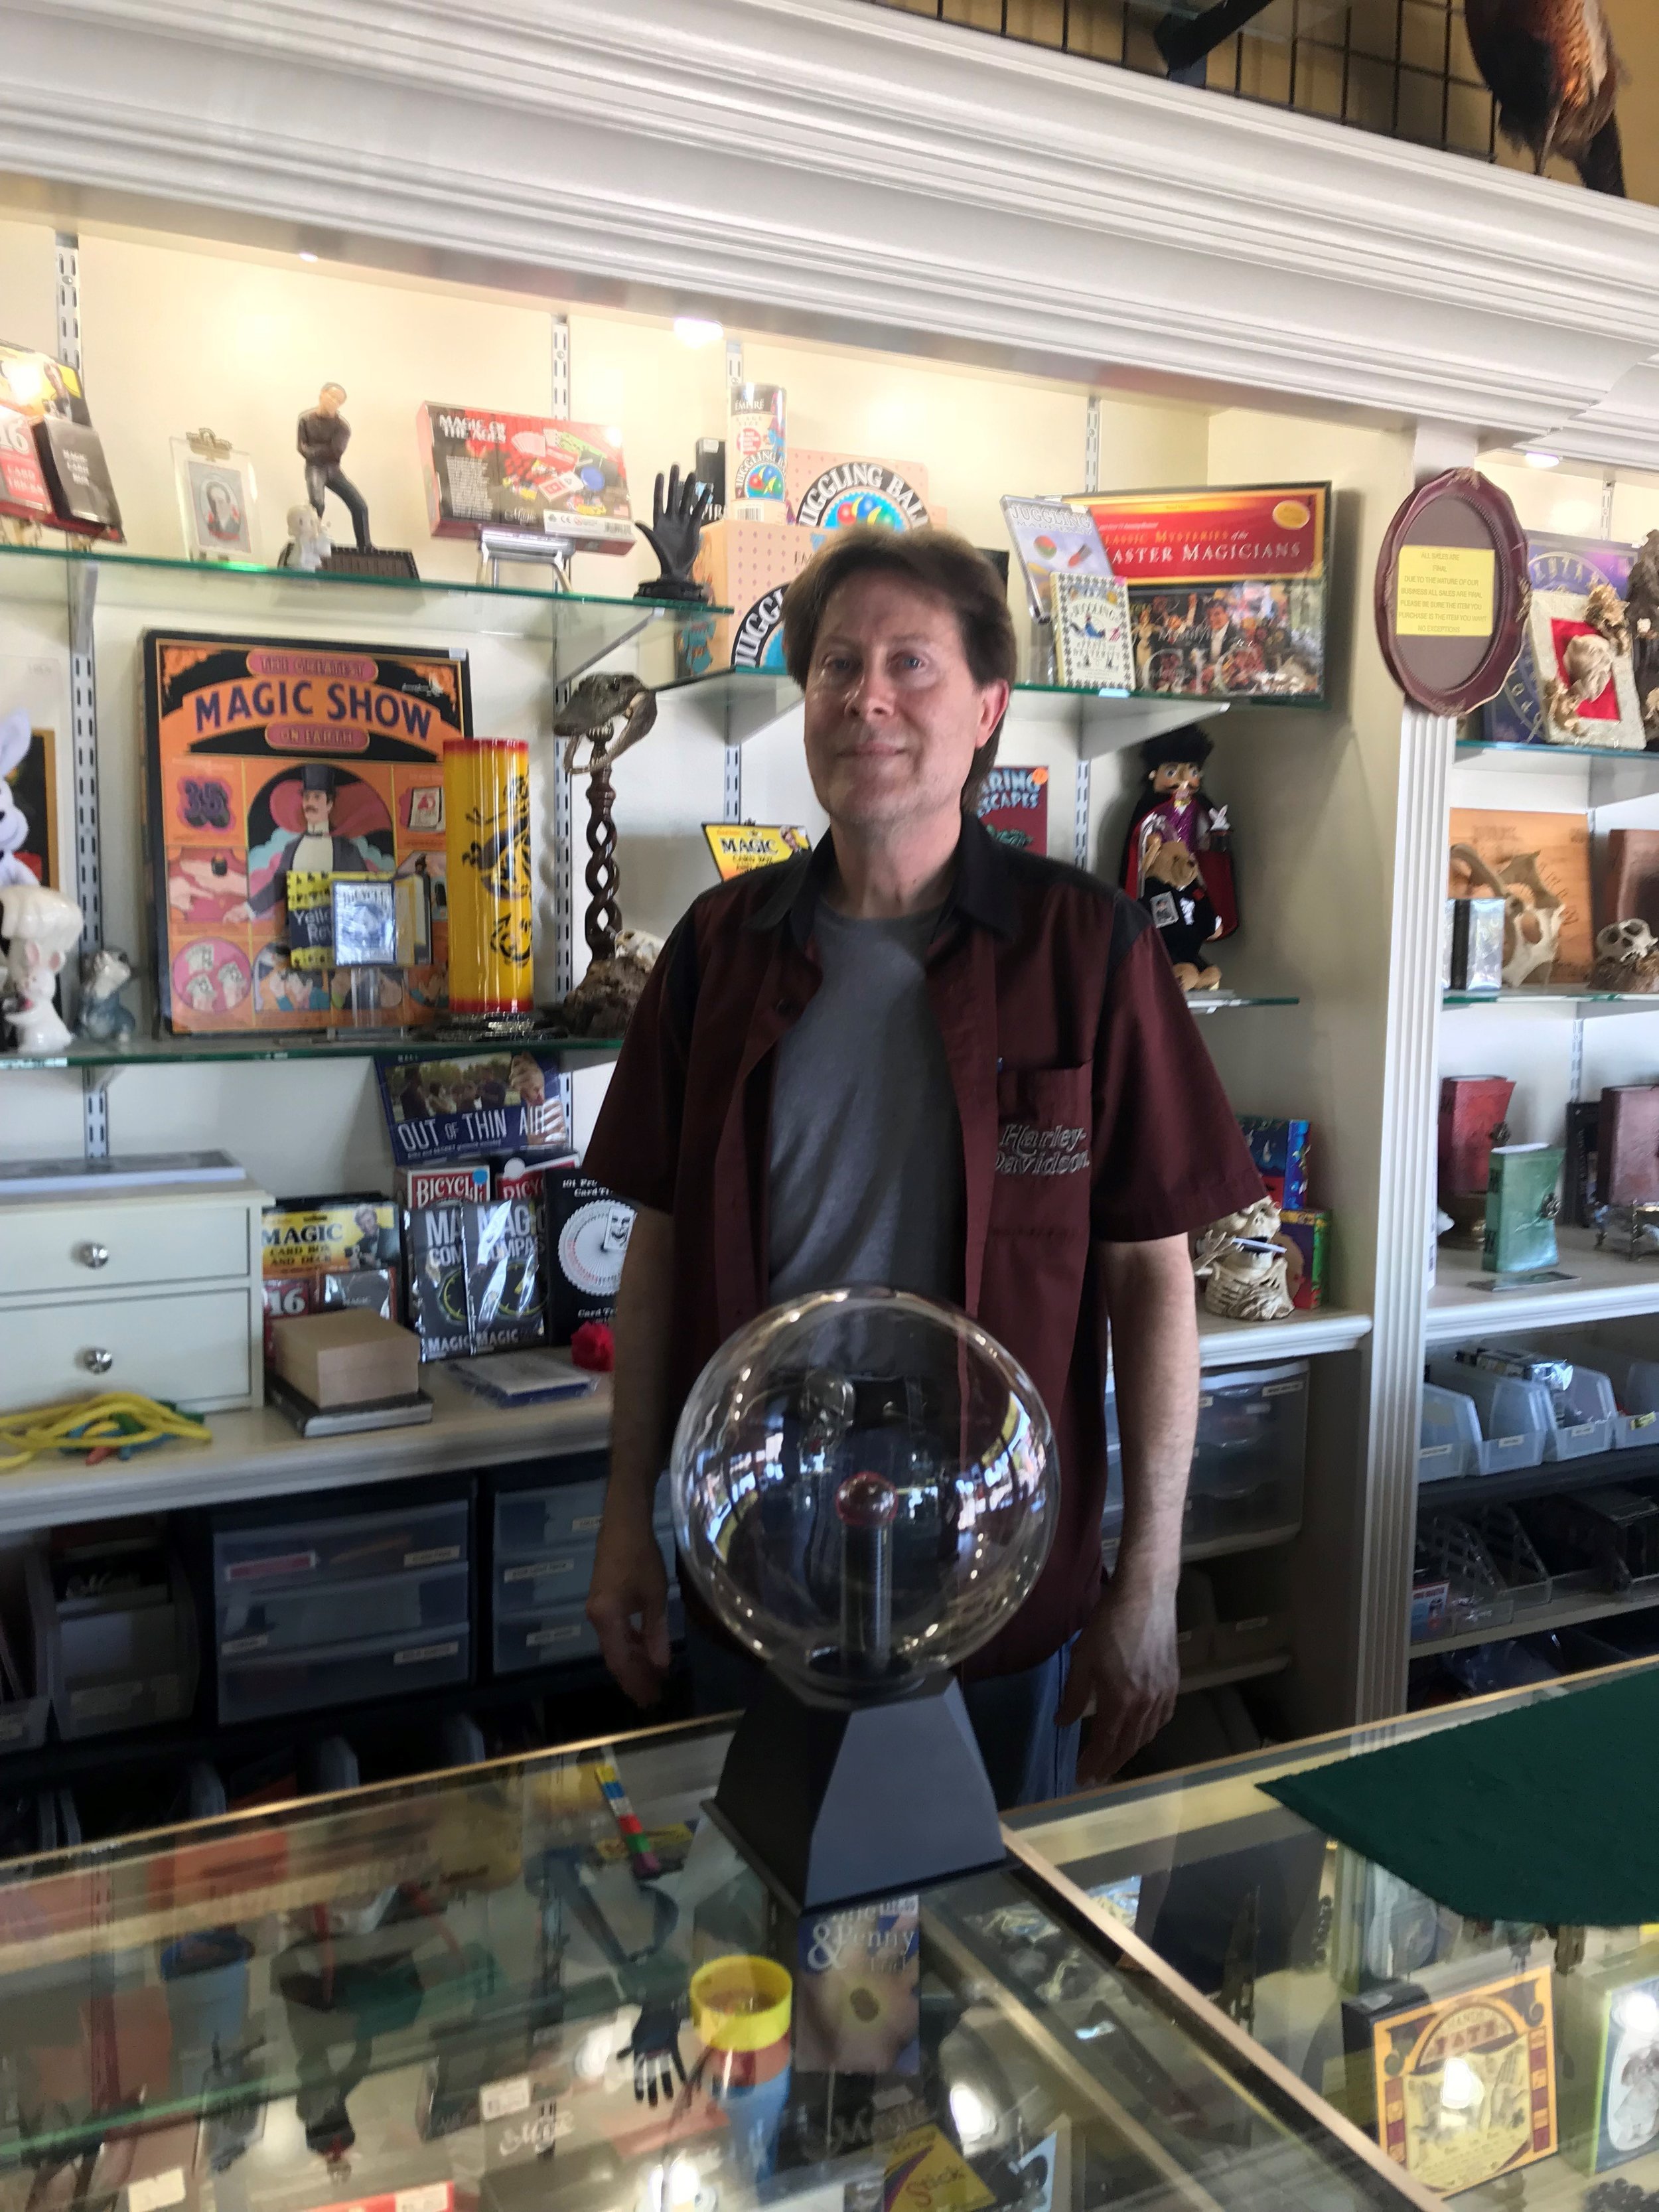 Bob James has owned and operated his magic shop in Elmhurst for 27 years